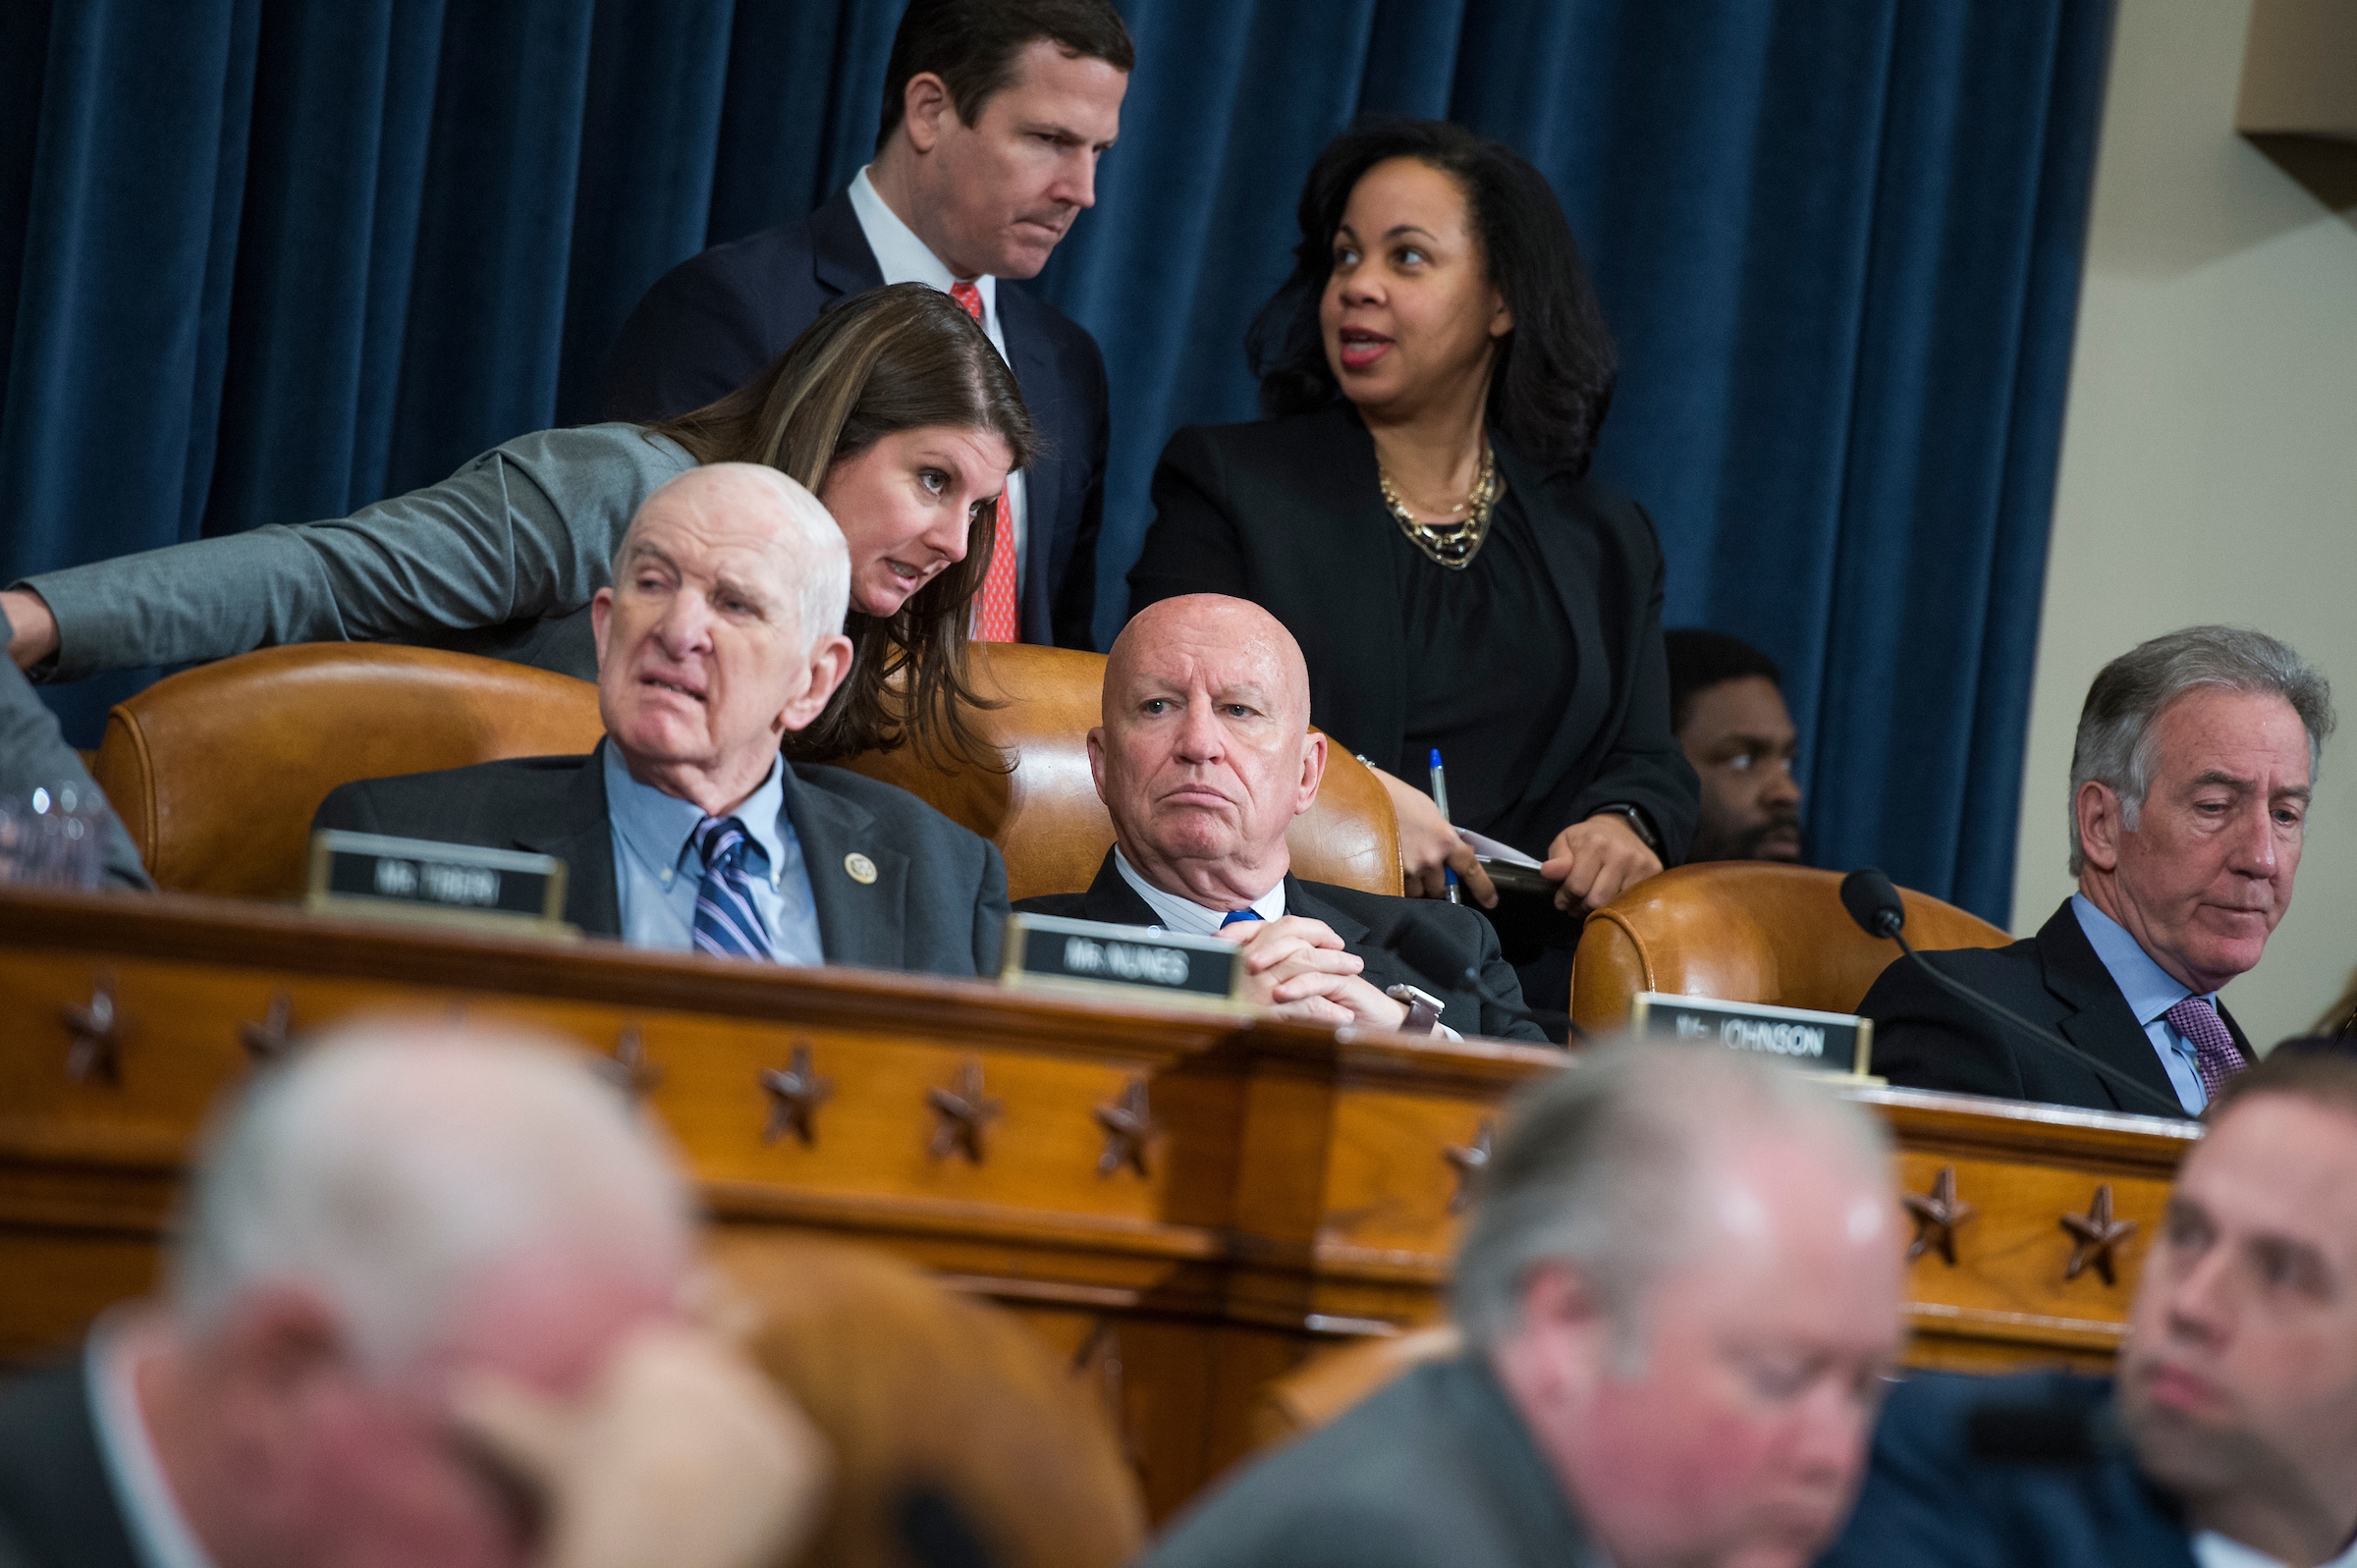 From left, Rep. Sam Johnson, R-Texas, Chairman Kevin Brady, R-Texas, and Ranking Member Richard Neal, D-Mass., conduct a House Ways and Means Committee markup in Longworth Building regarding the bill to repeal and replace the the Affordable Care Act, on Wednesday. (Tom Williams/CQ Roll Call)